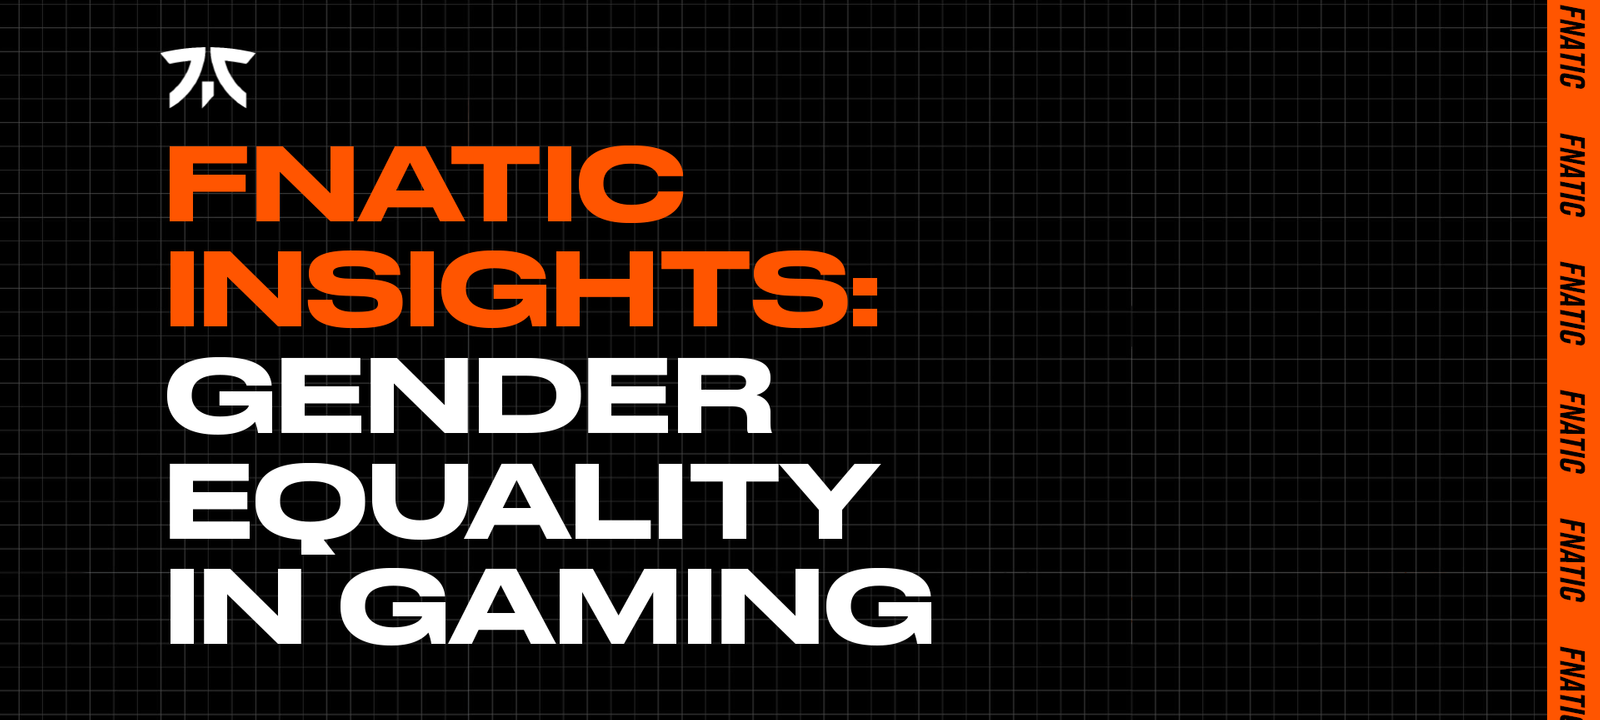 Fnatic Insights: Gender Equality in Gaming